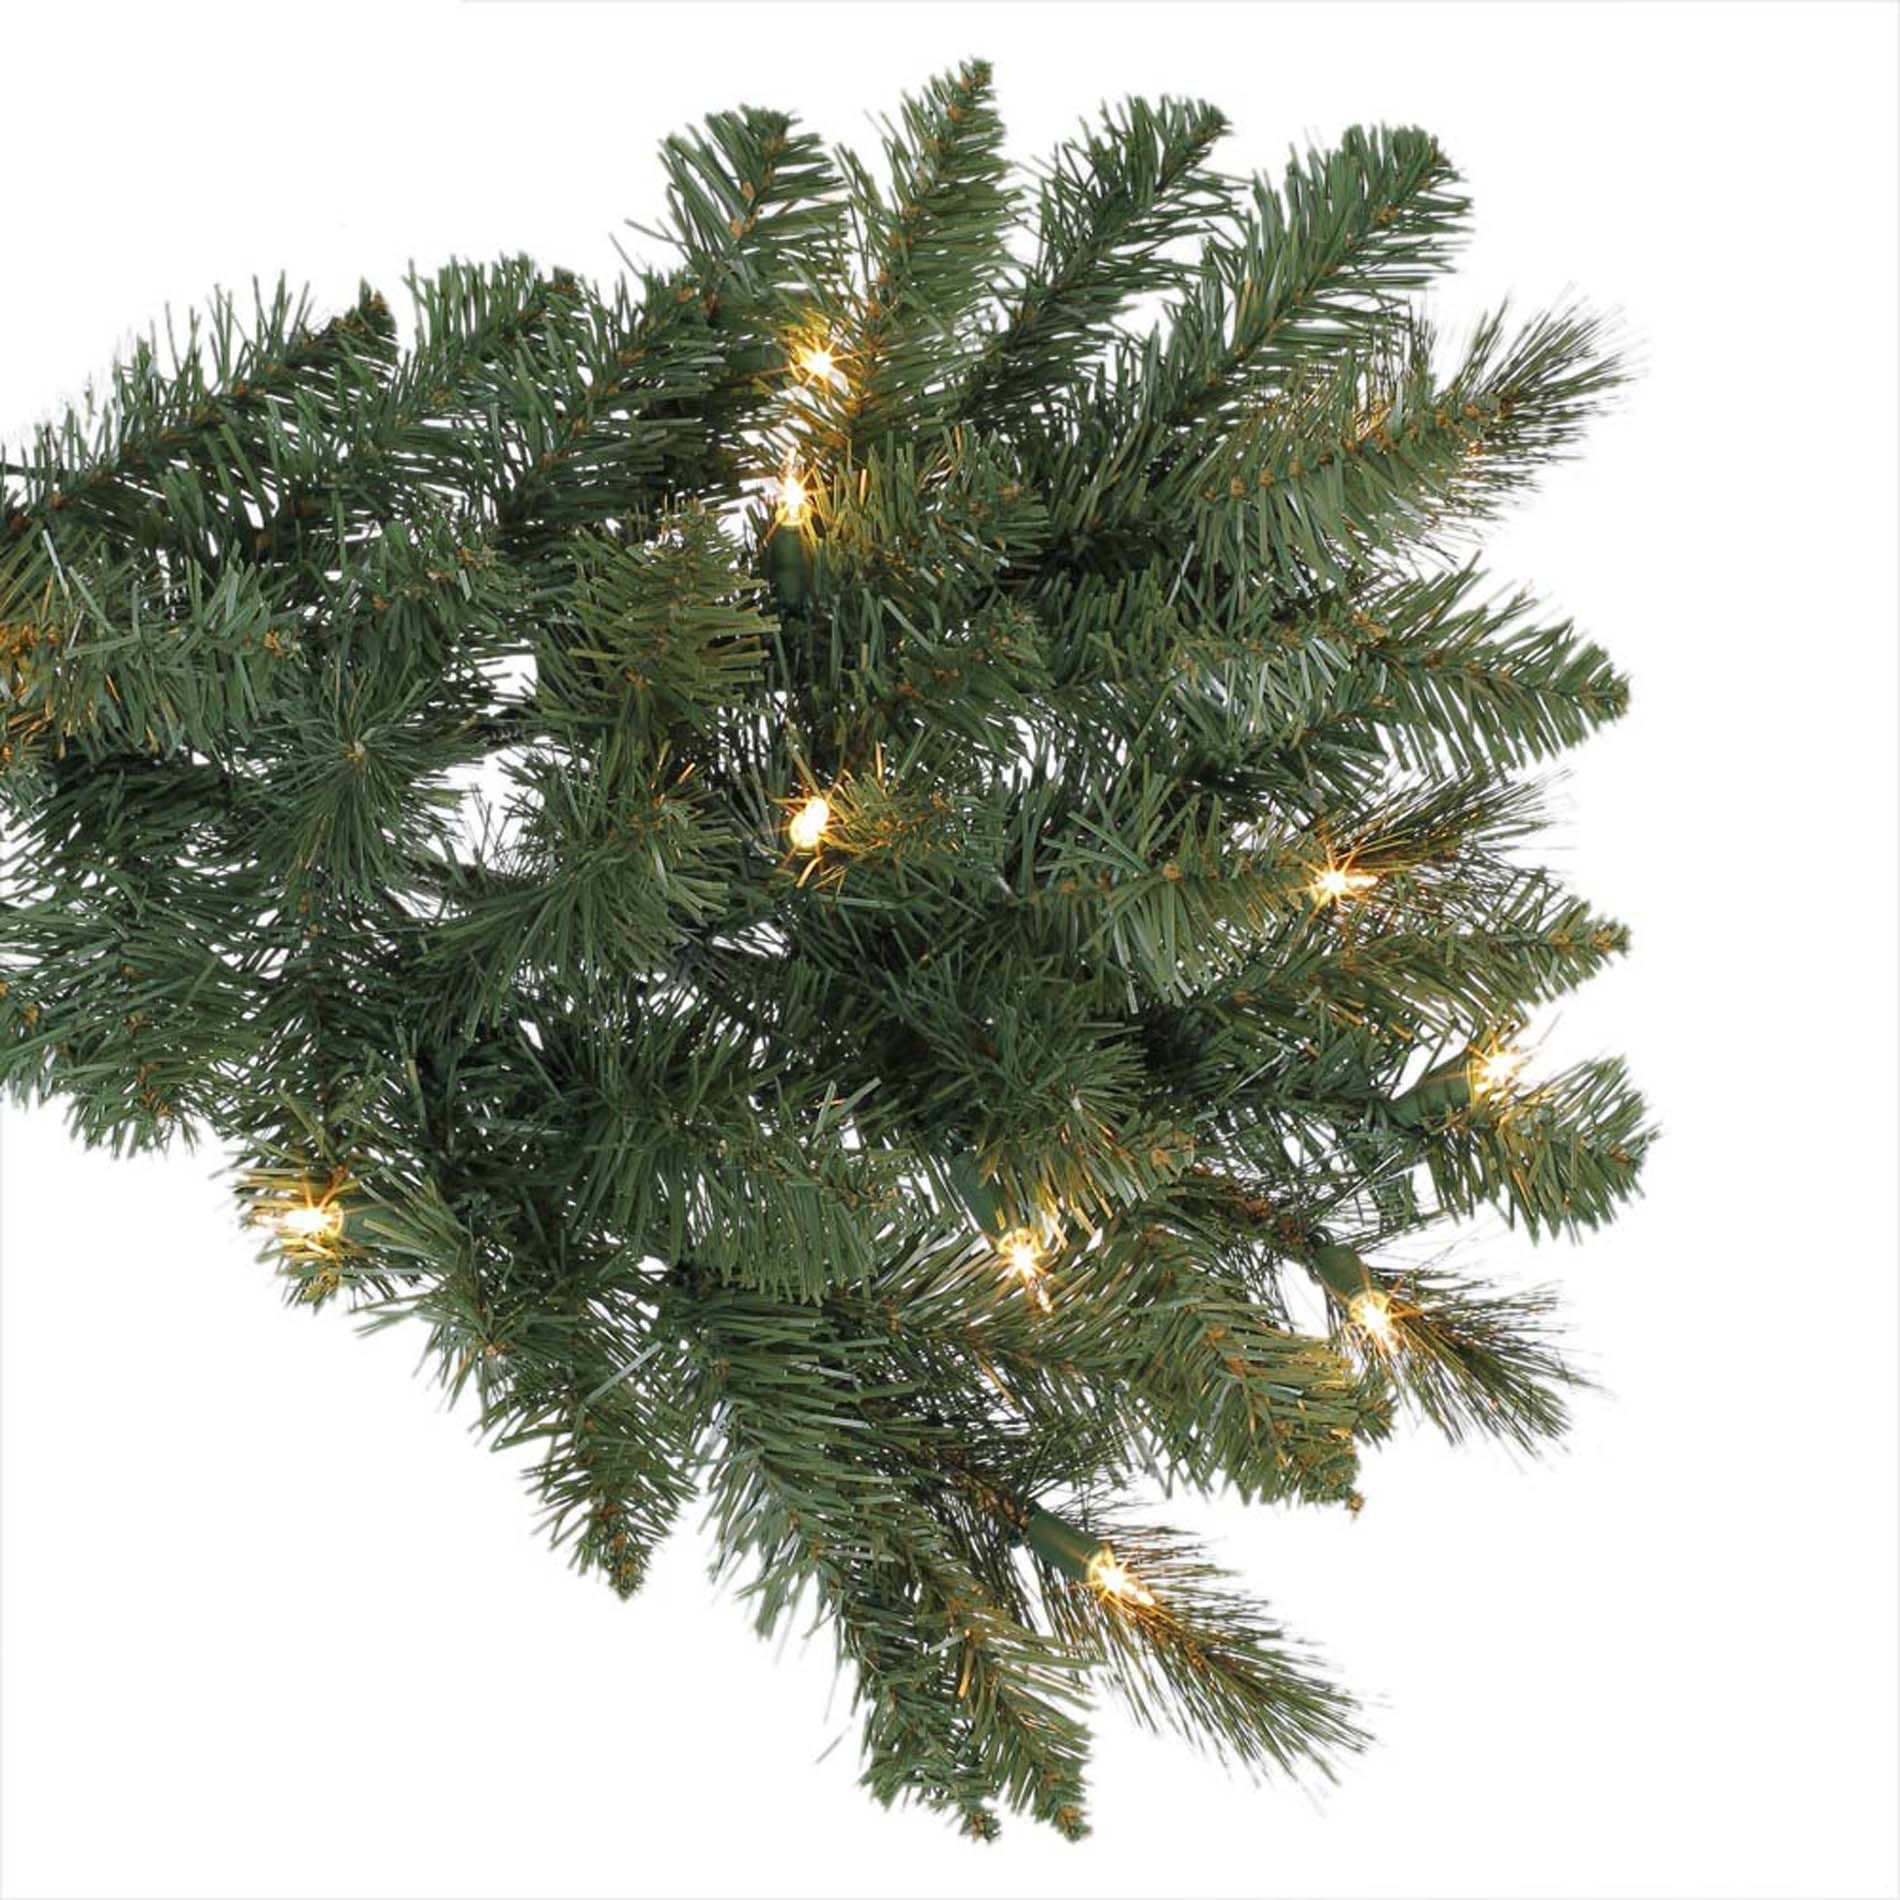 Ty Pennington Style 7.5ft Brentwood Spruce Christmas Tree with 600 Never-Out Clear Lights